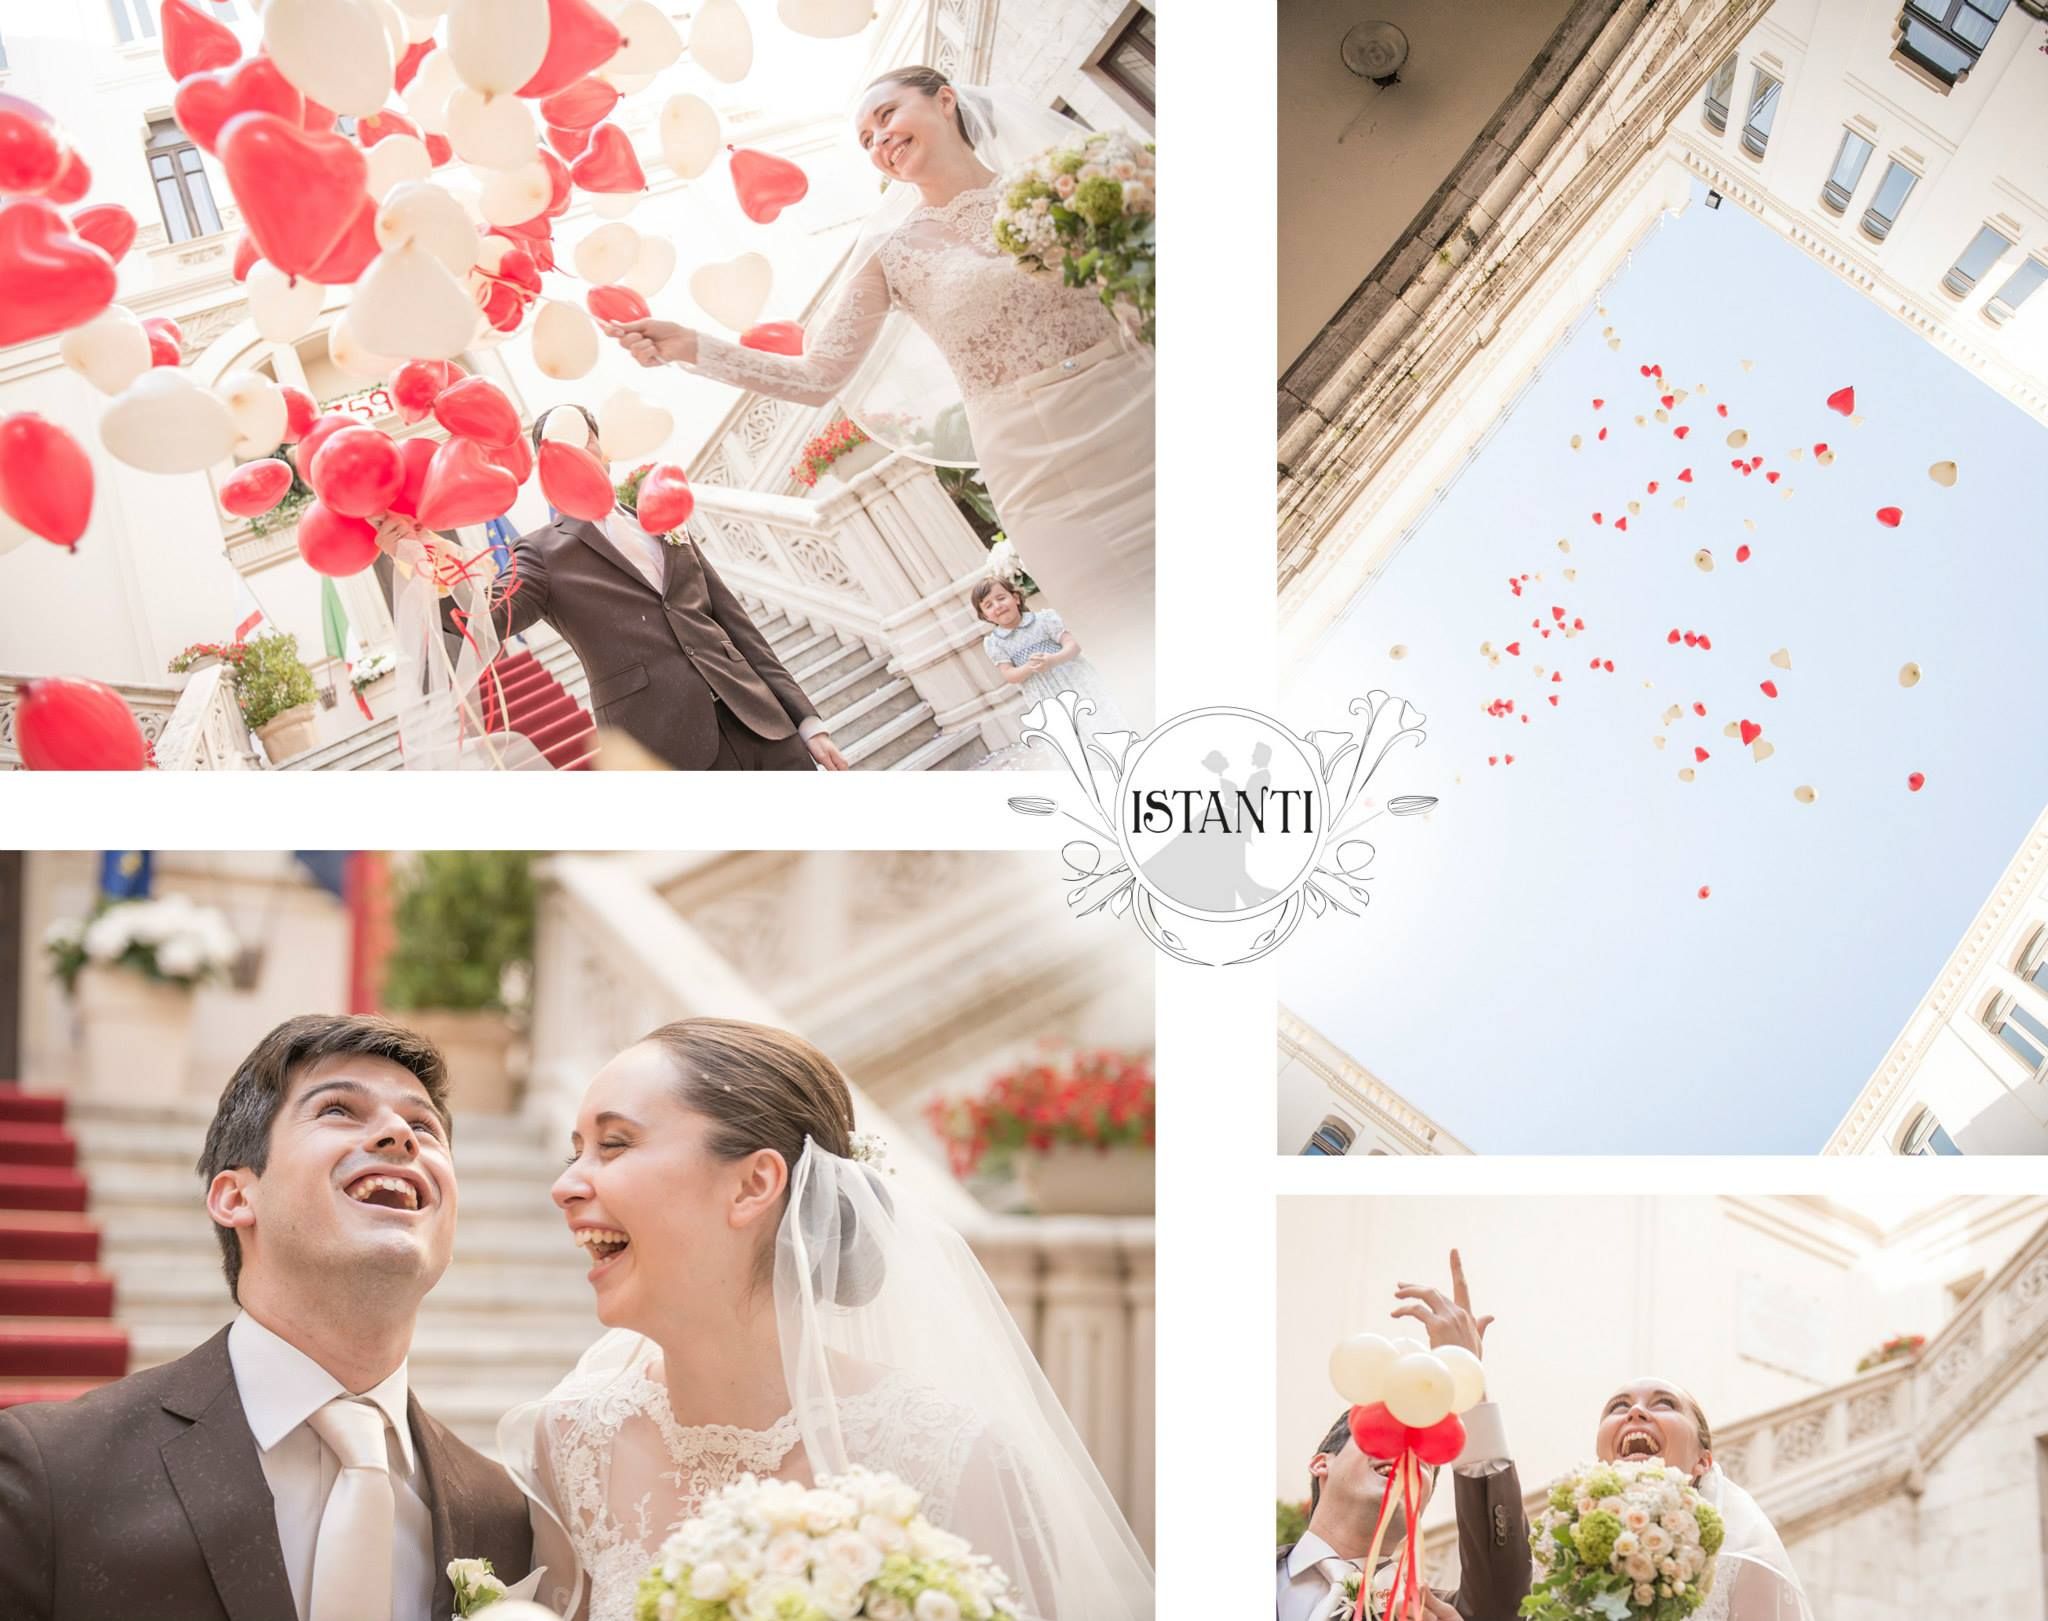 Istanti – Wedding Photography (100 images)